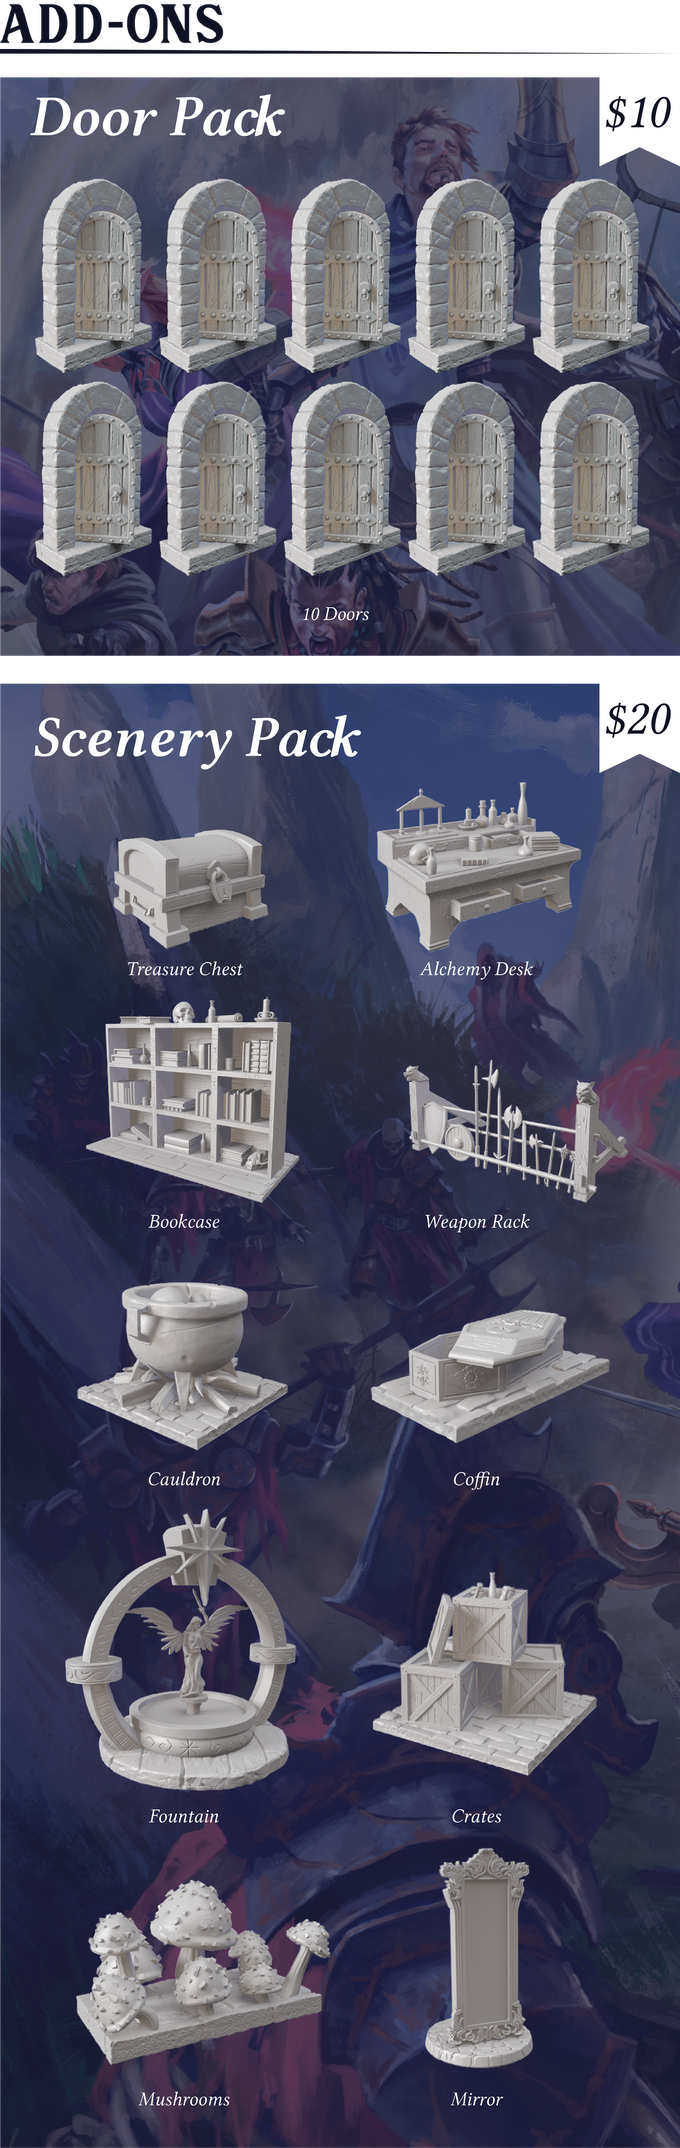 Scenery Pack - Blacklist Games